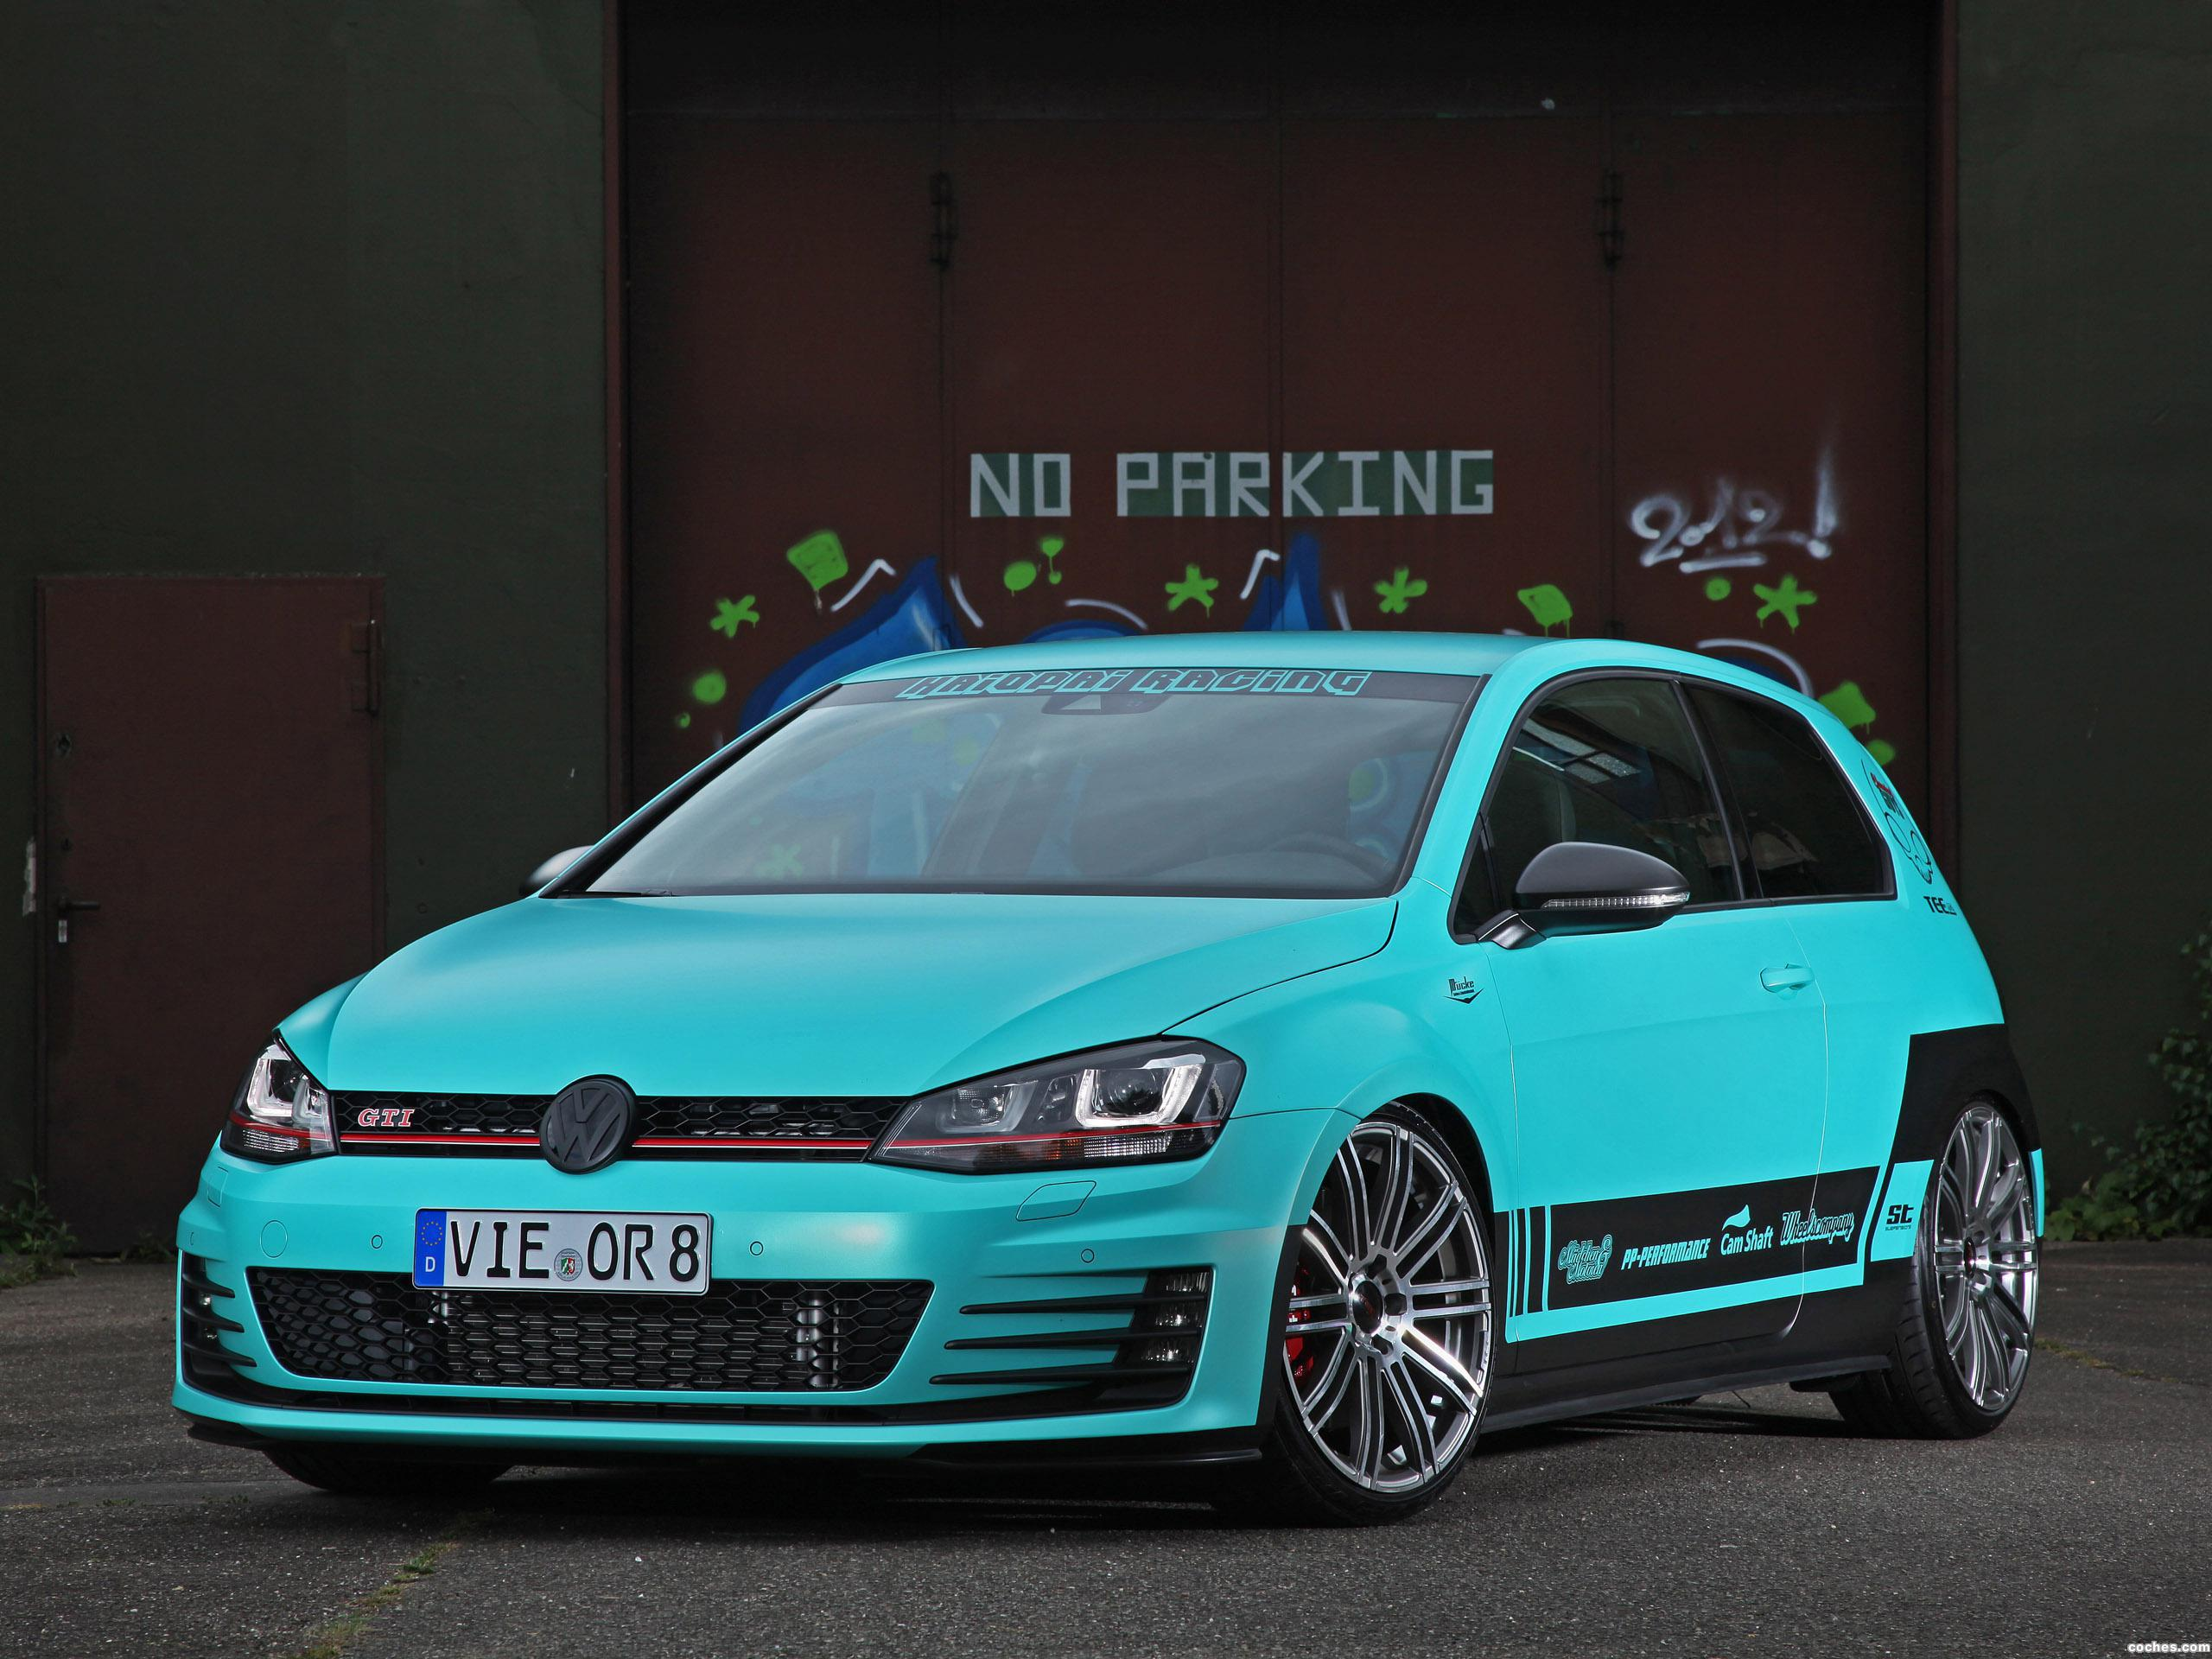 Foto 0 de Cam Shaft Volkswagen Golf 2014